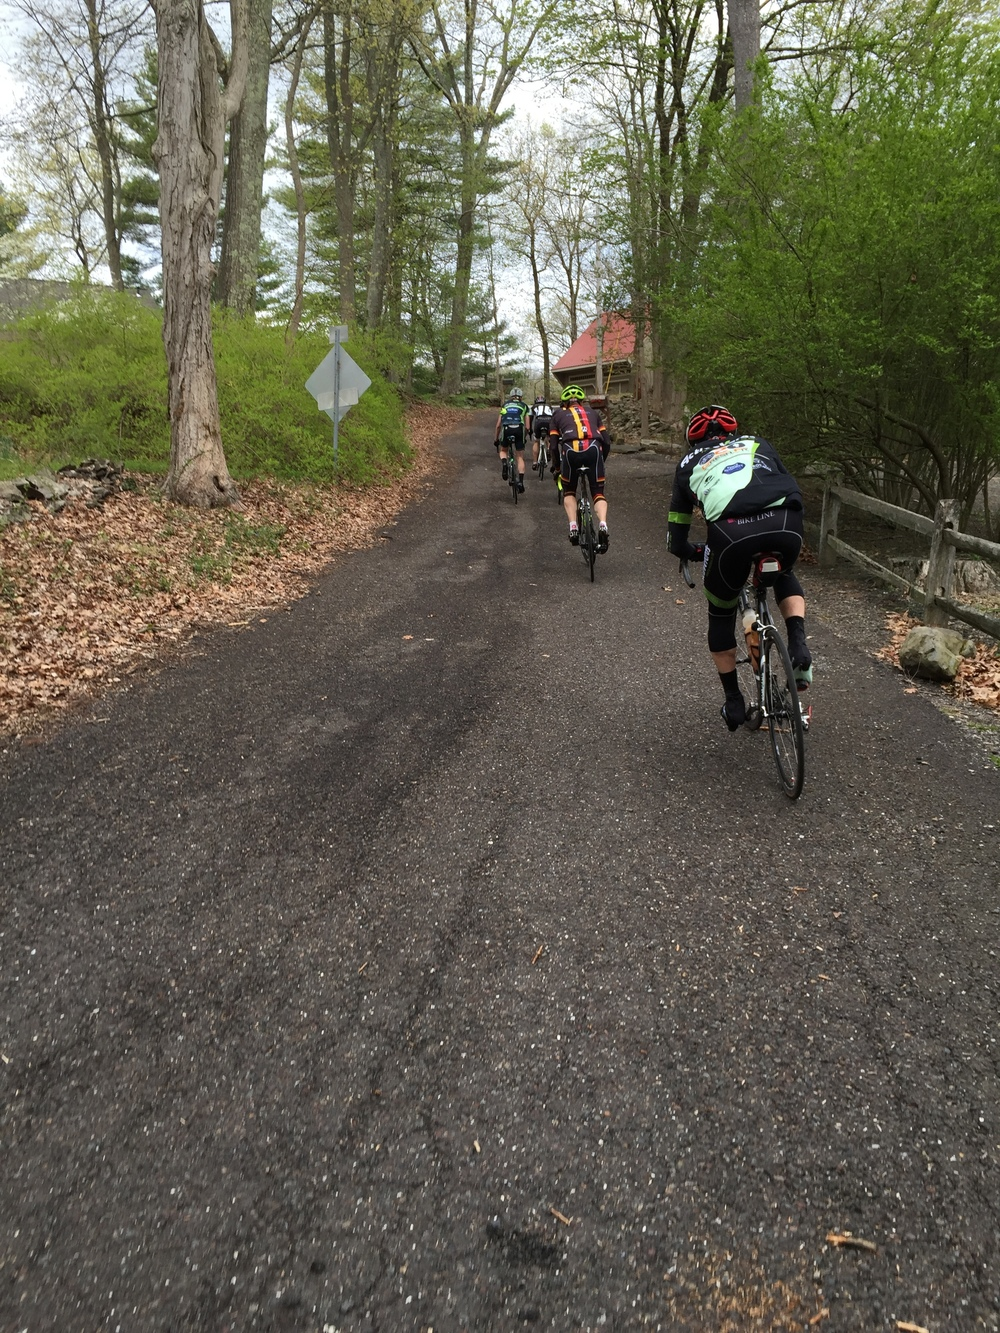 Caught by the lead group, we climbed Stover Park Road together. Stover Park Road is a closed road and is barely maintained.